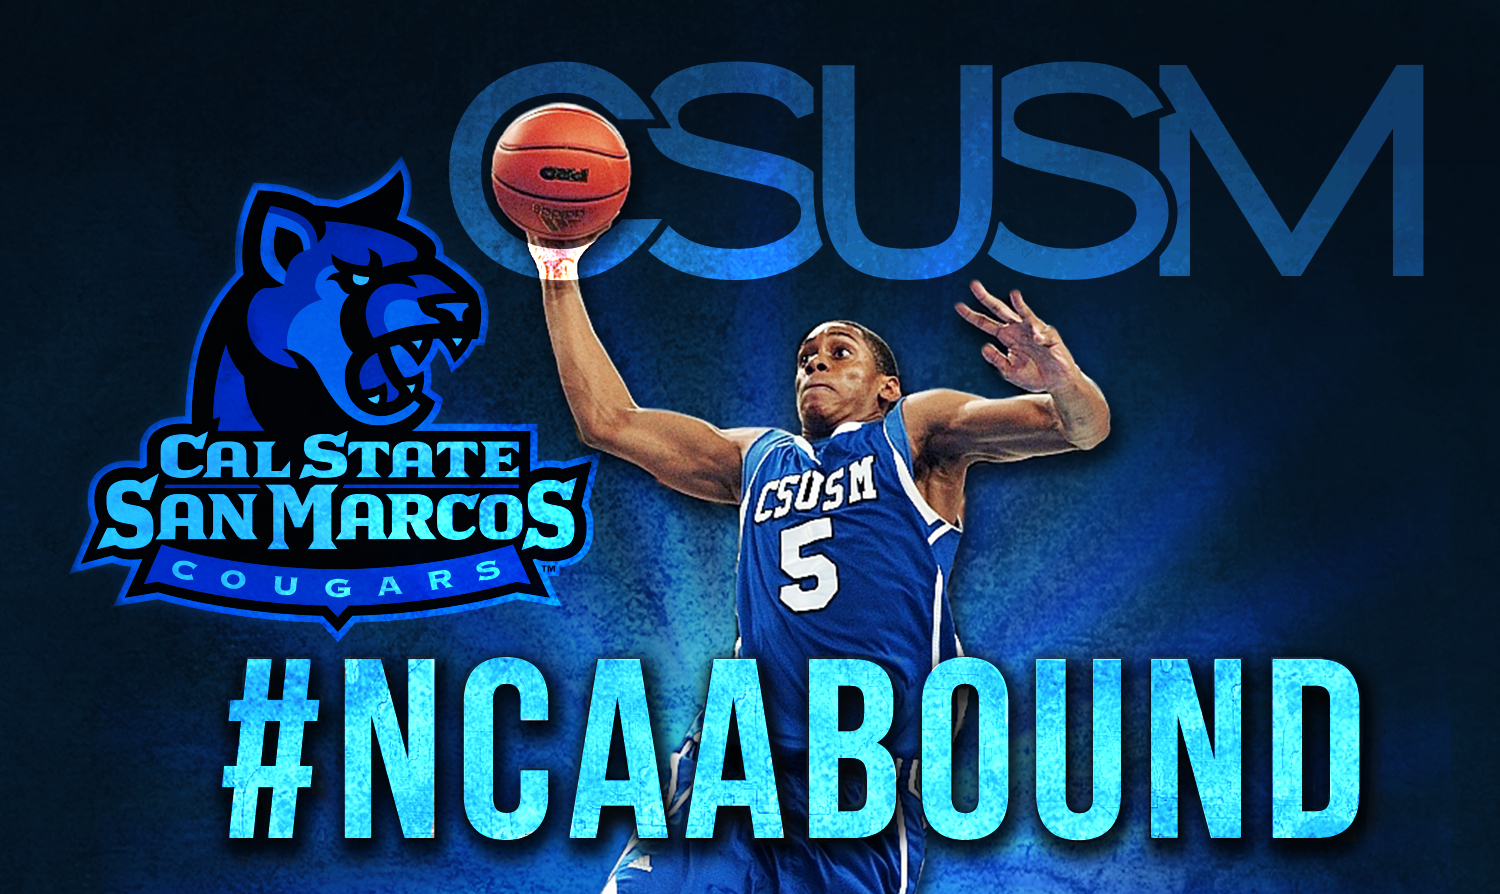 CSUSM is bound for NCAA Division II